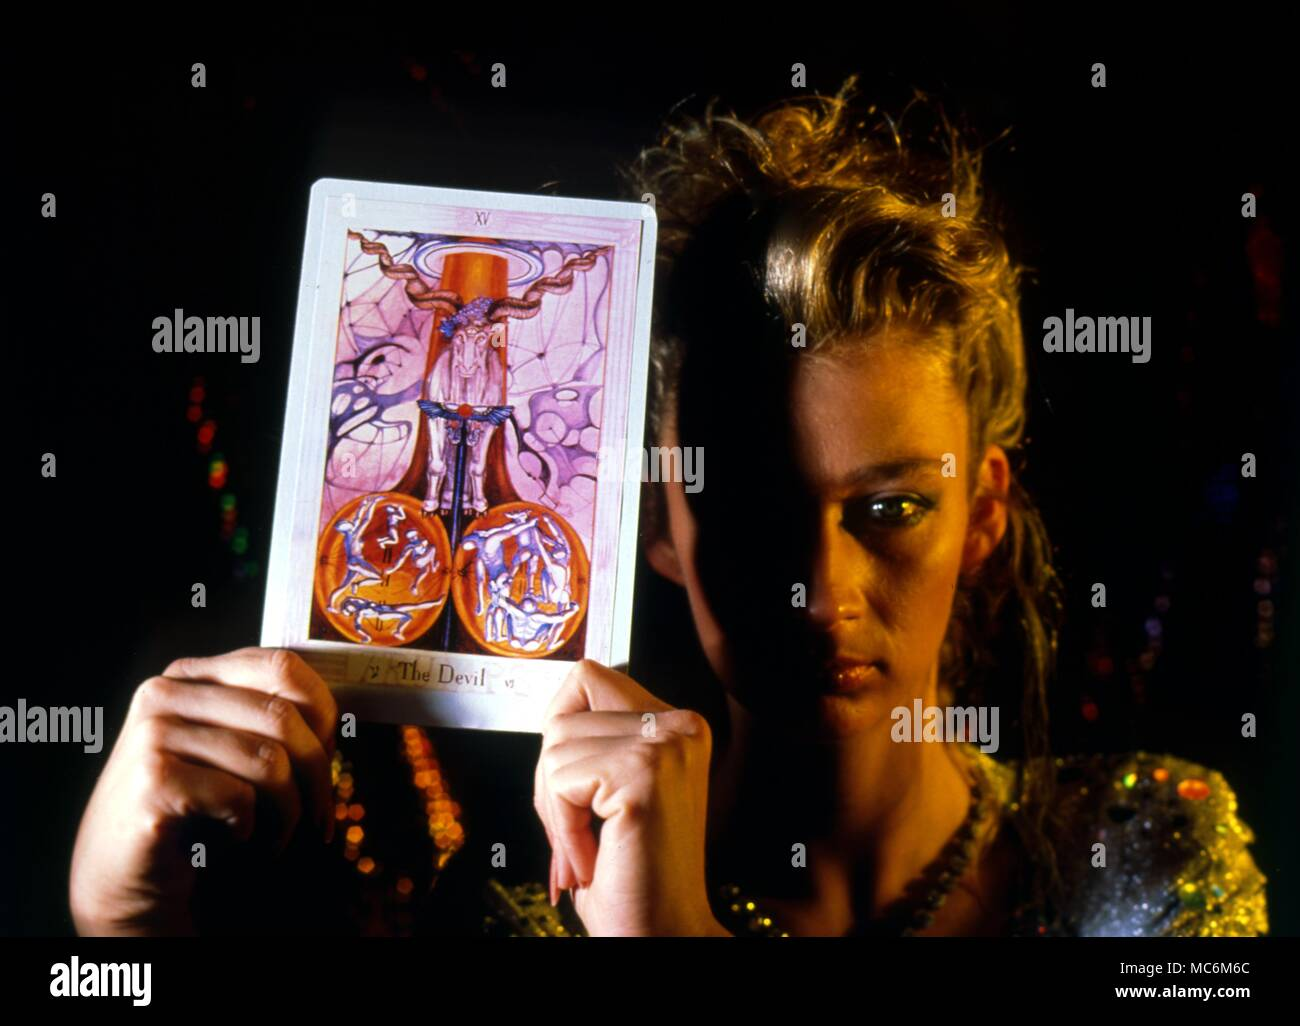 Tarot Cards Woman holding up the Tarot card, The Devil, from the